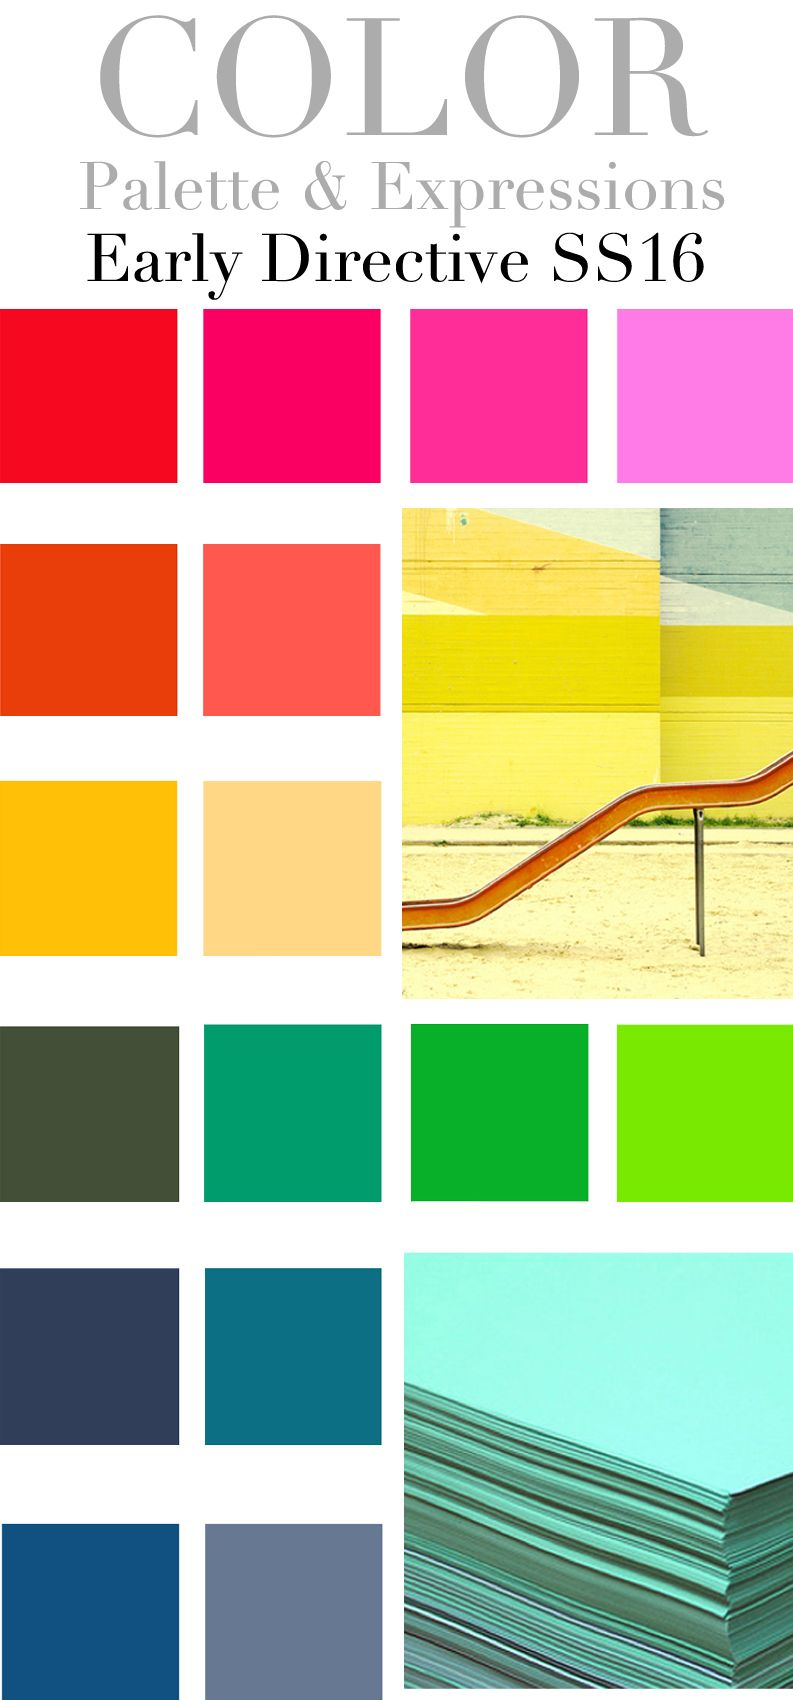 TREND COUNCIL SS 2016 - EARLY COLOR DIRECTION | b&p2018 ...